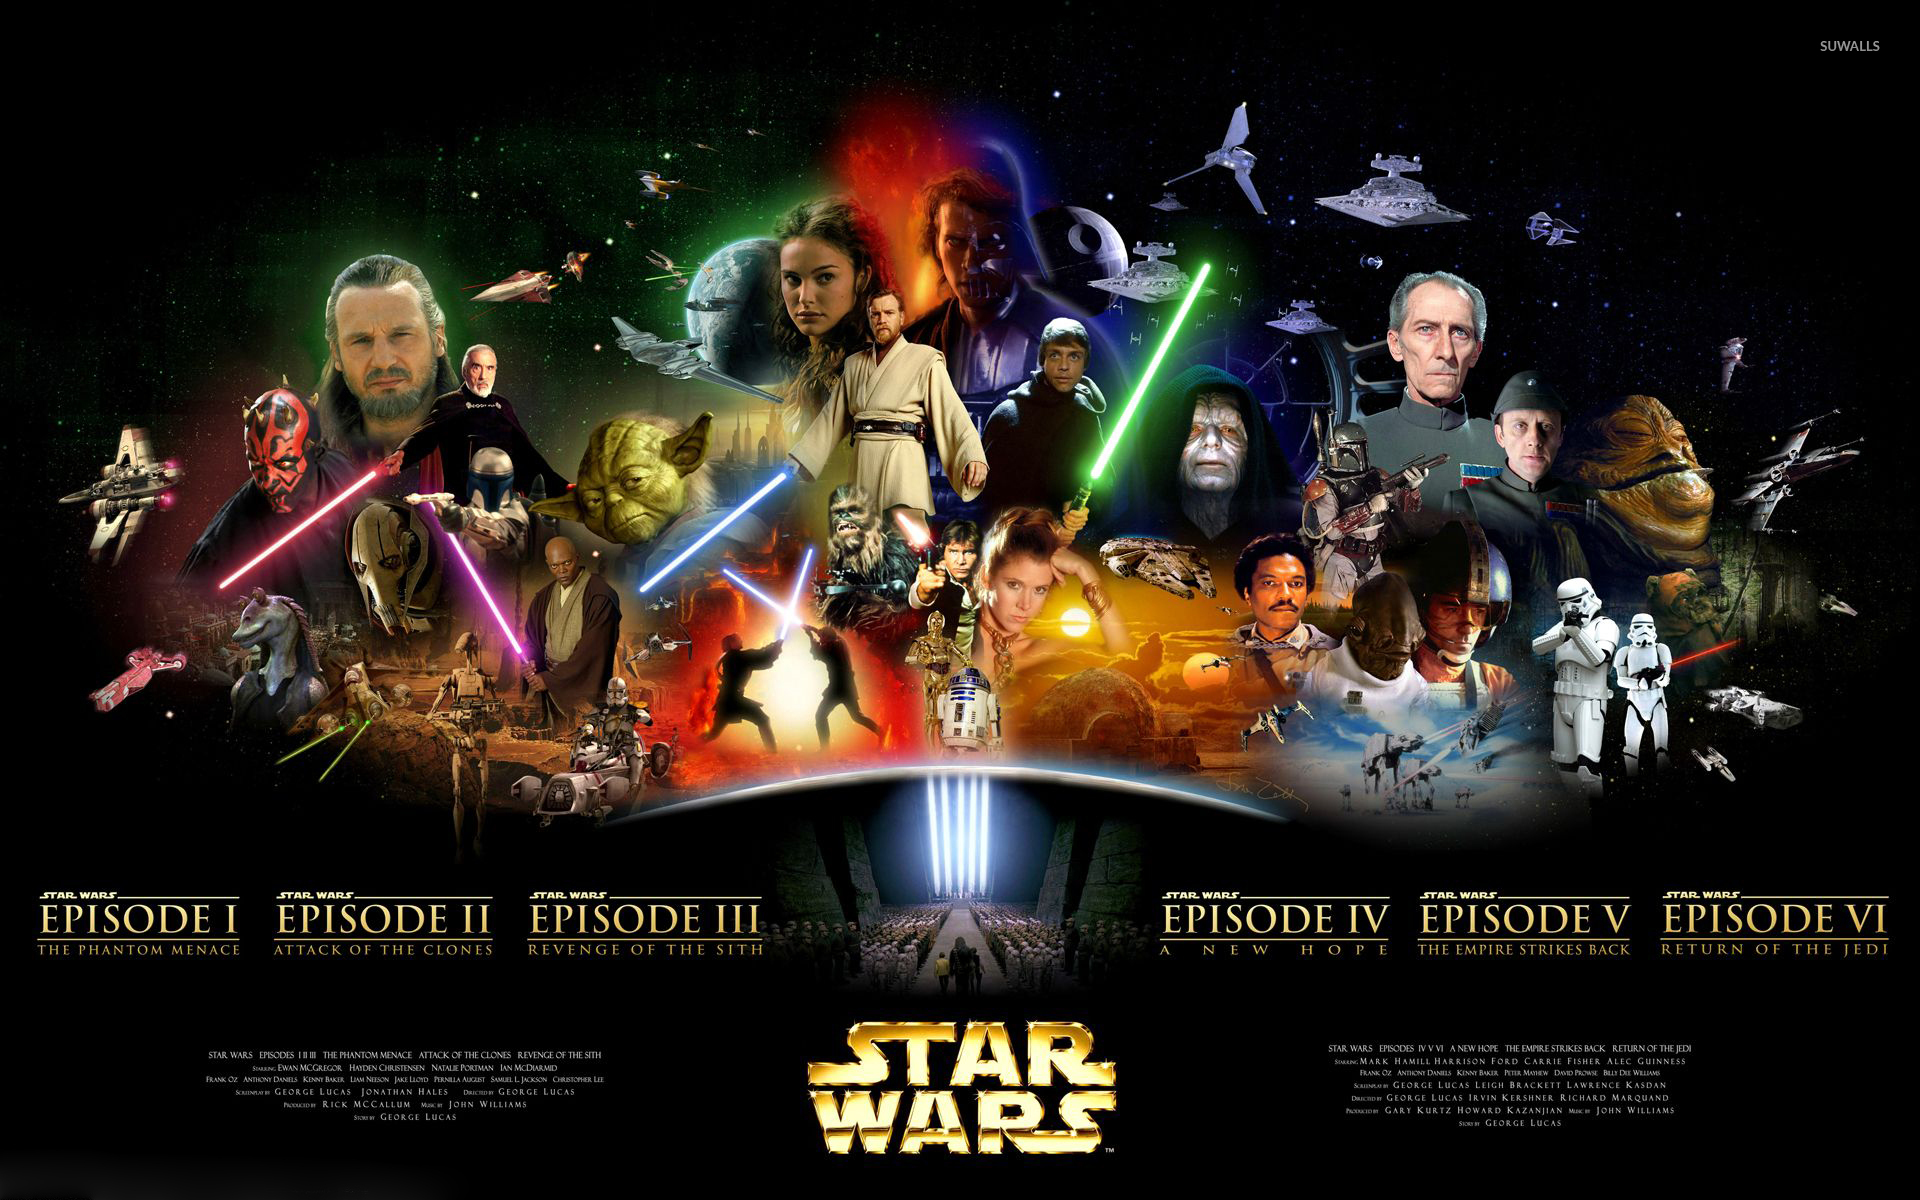 Star Wars Series Wallpaper Movie Wallpapers 52563